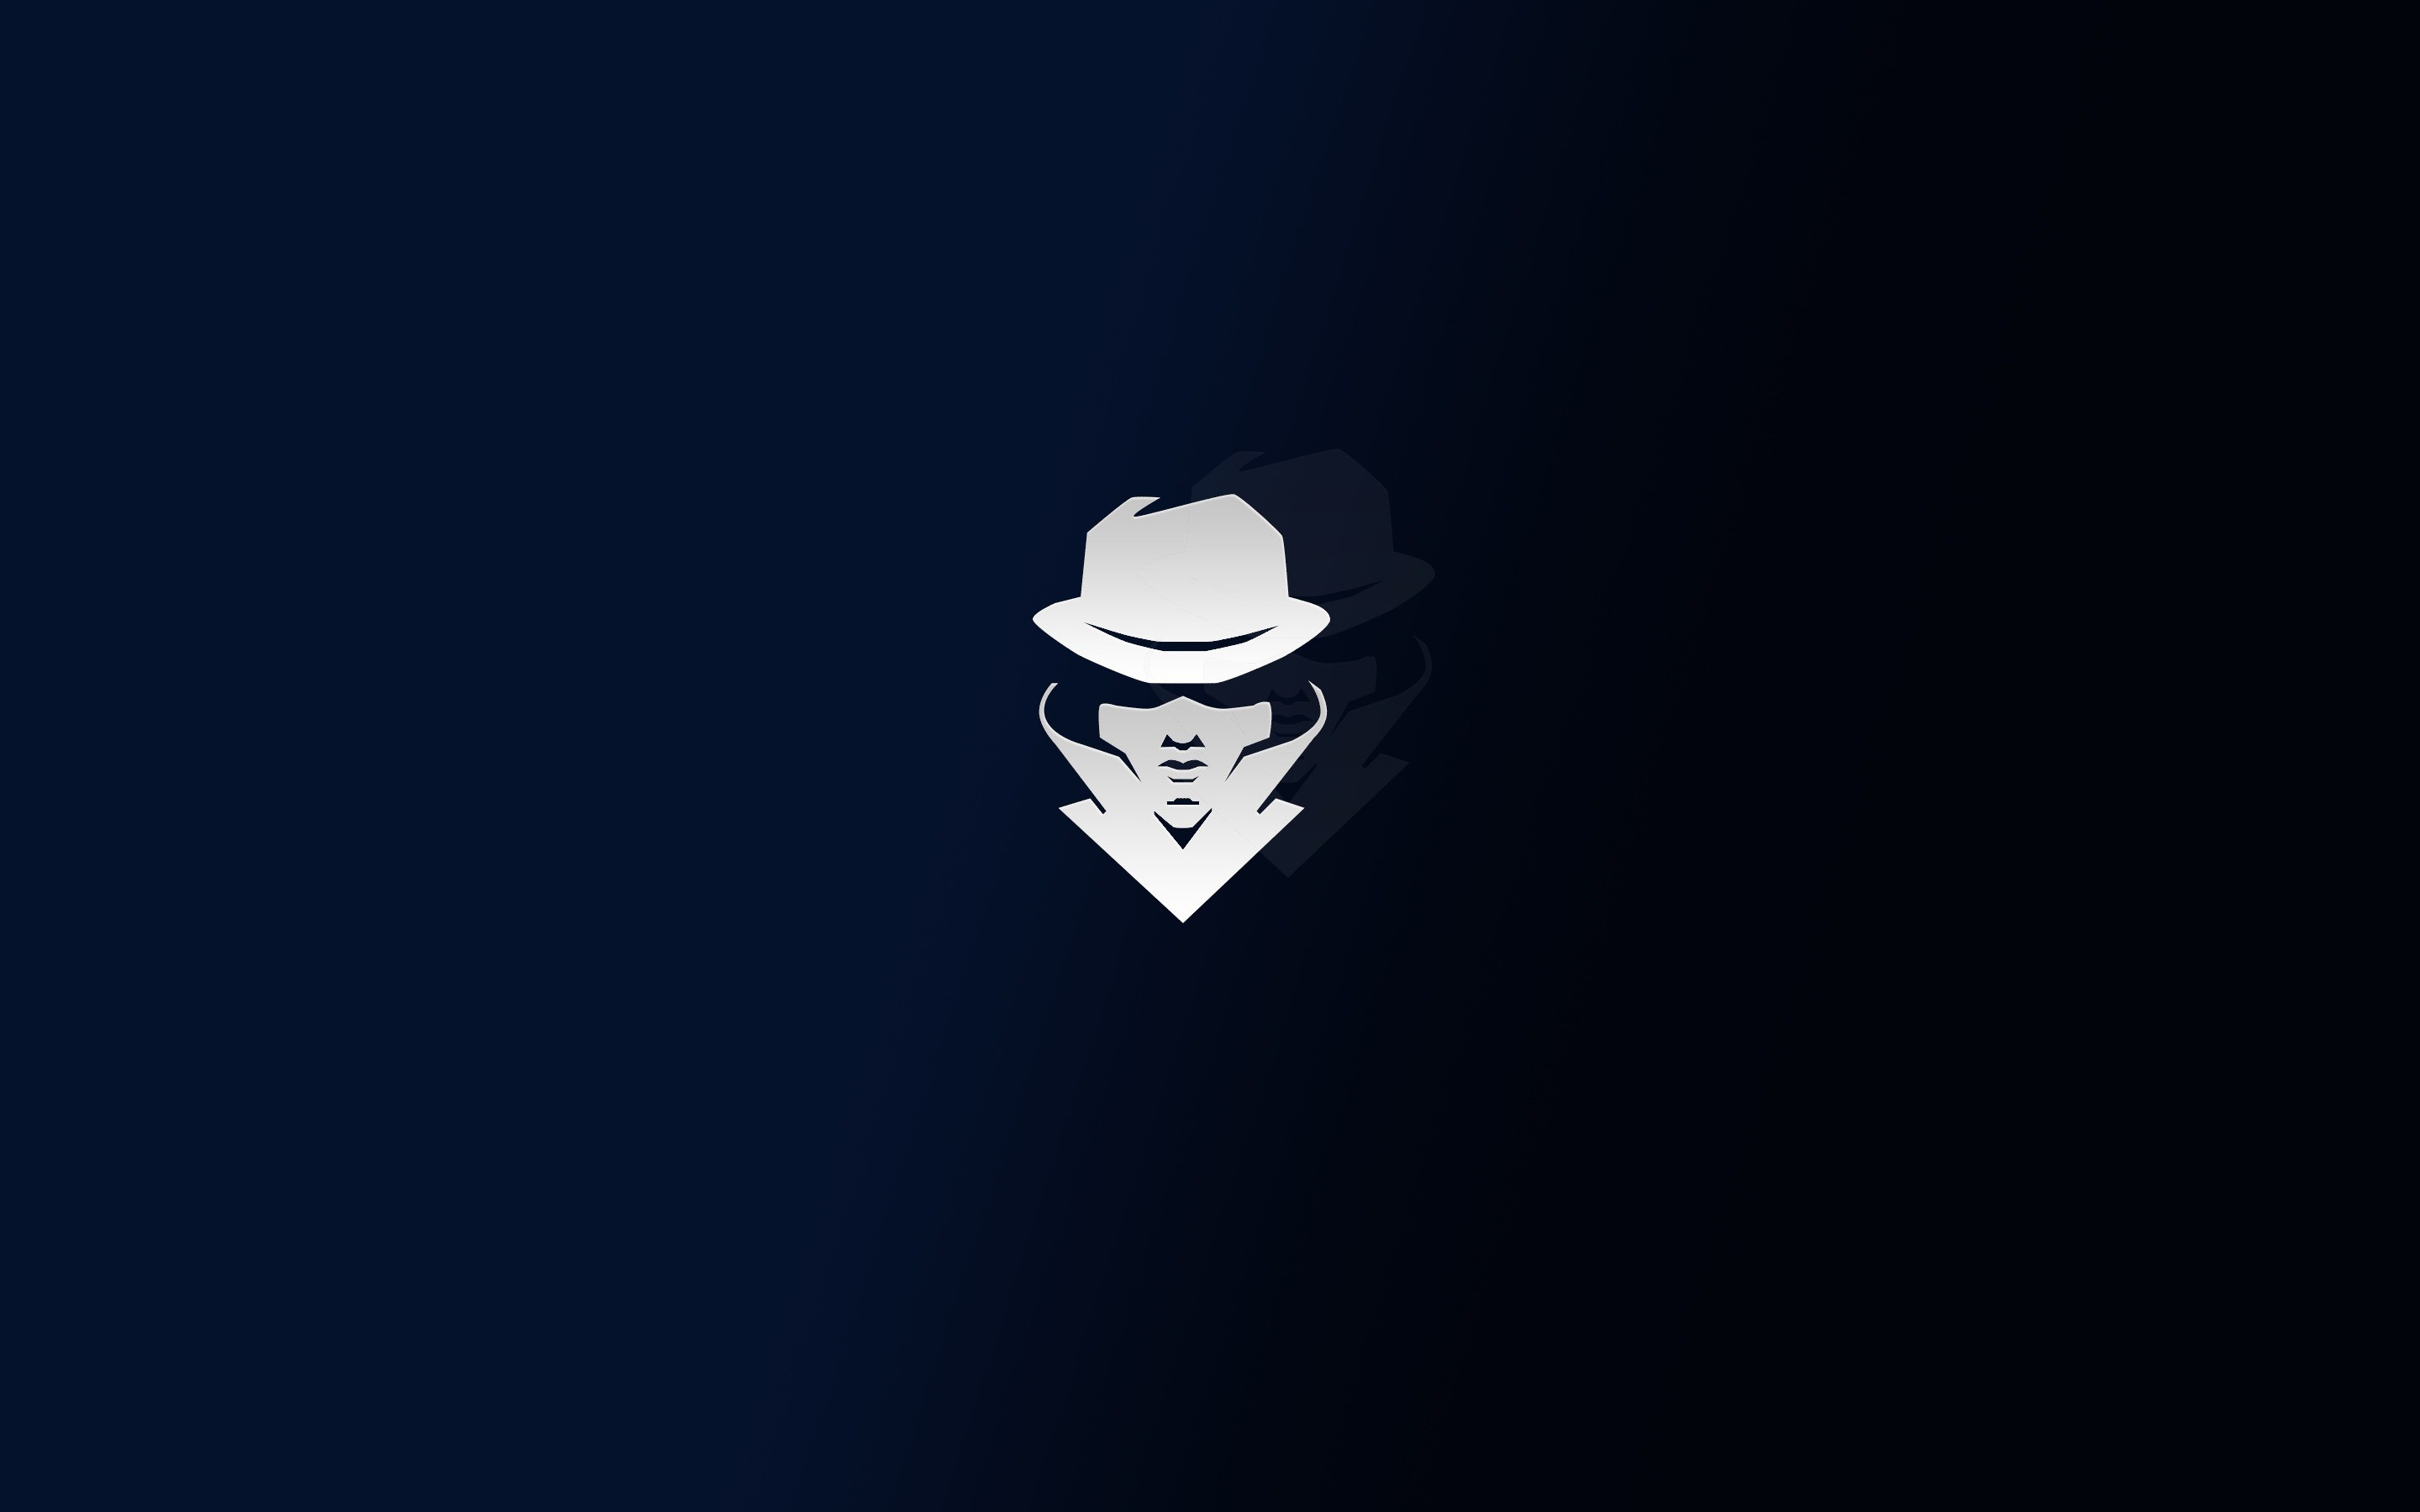 2880x1800 Wallpaper Secretteam Dota2 Logo Game Games Dota Secret